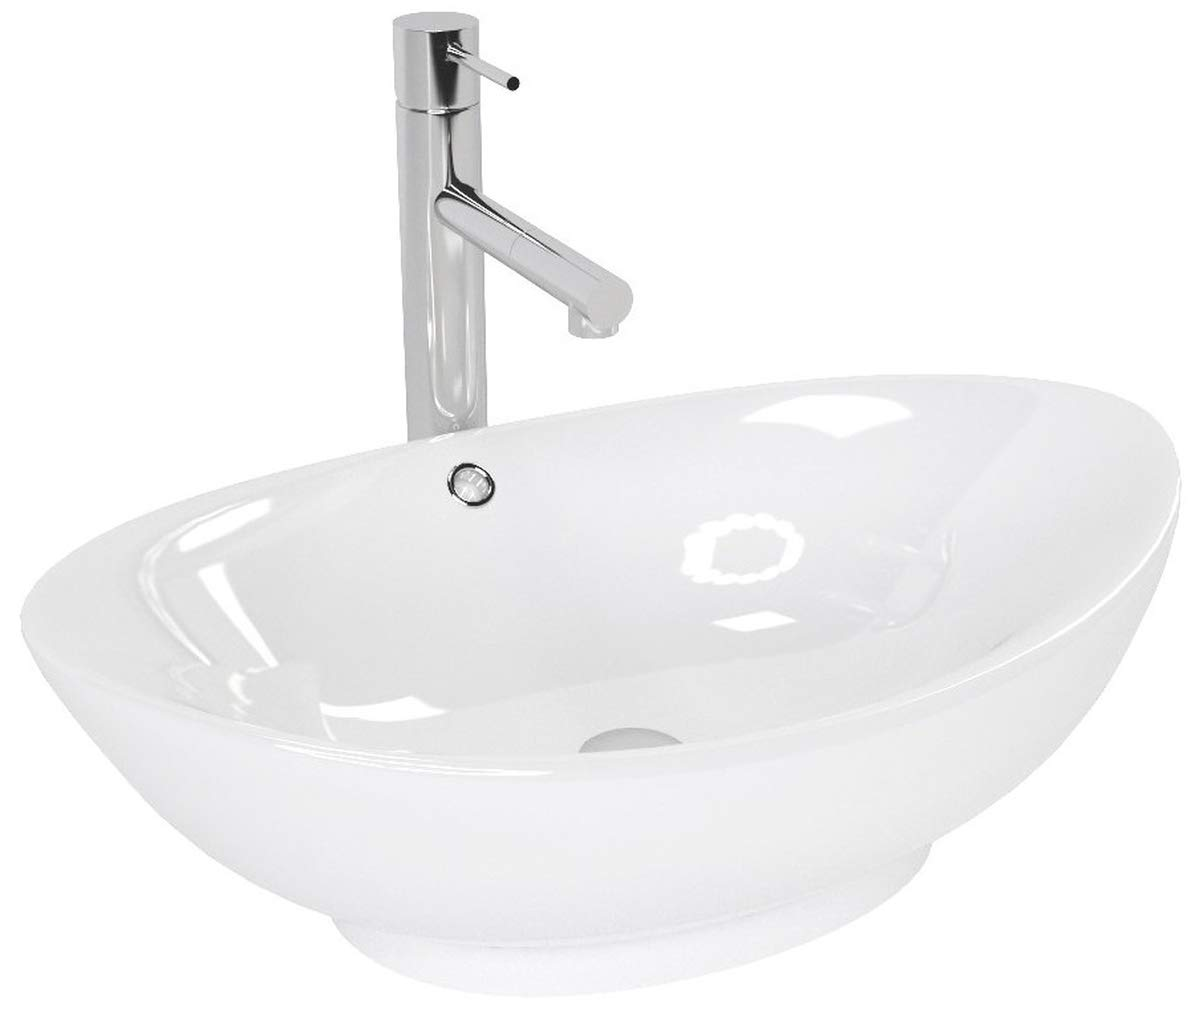 Wendy Designer Ceramic Oval Wash Basin 58.5 x 38 x 15.5 for Bathroom Guest Toilet VBChome